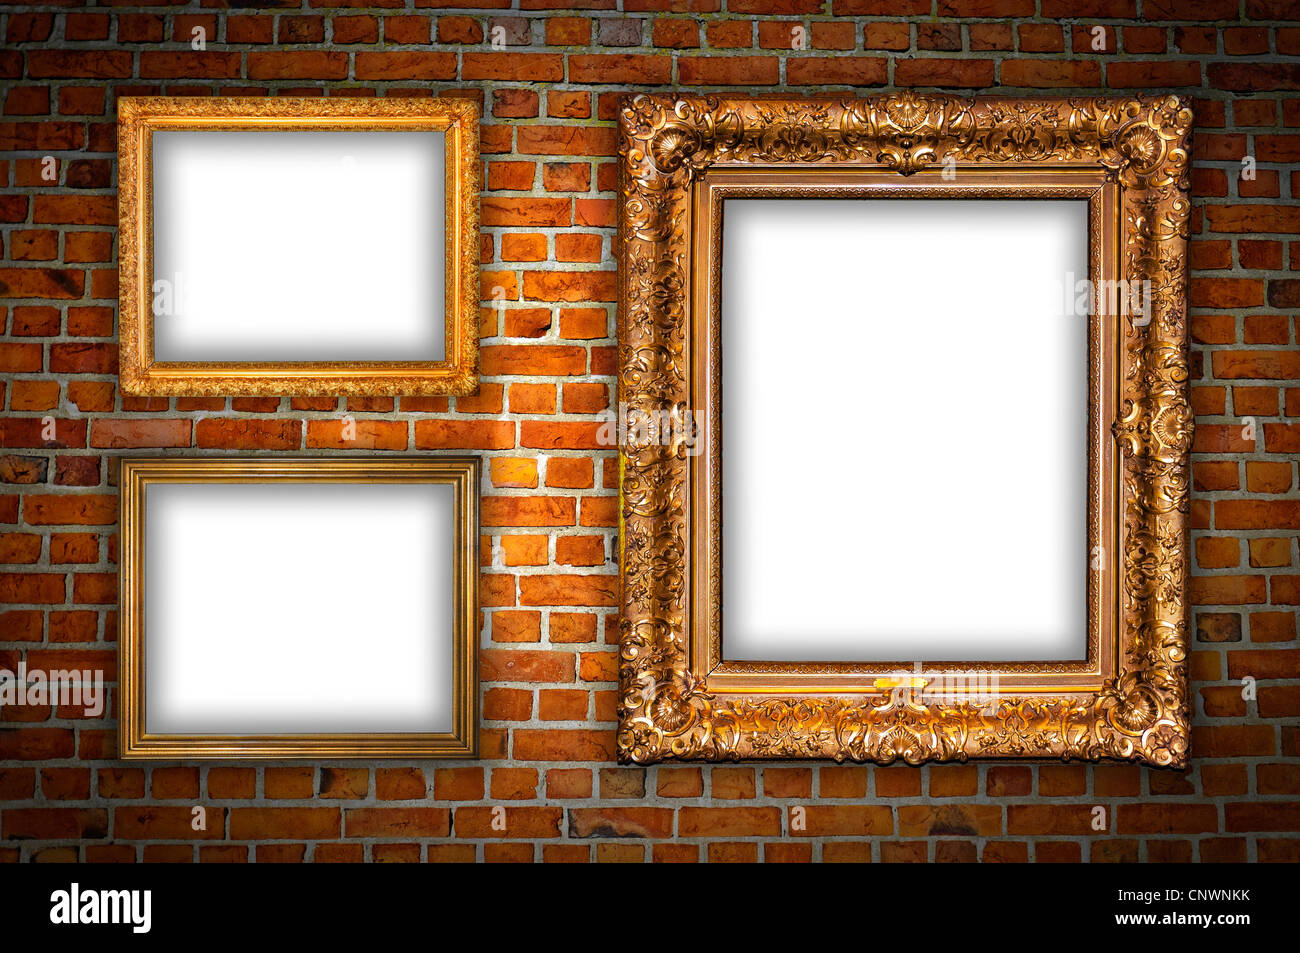 Old ornate golden frames hanging on a brick wall stock for Hanging frames on walls